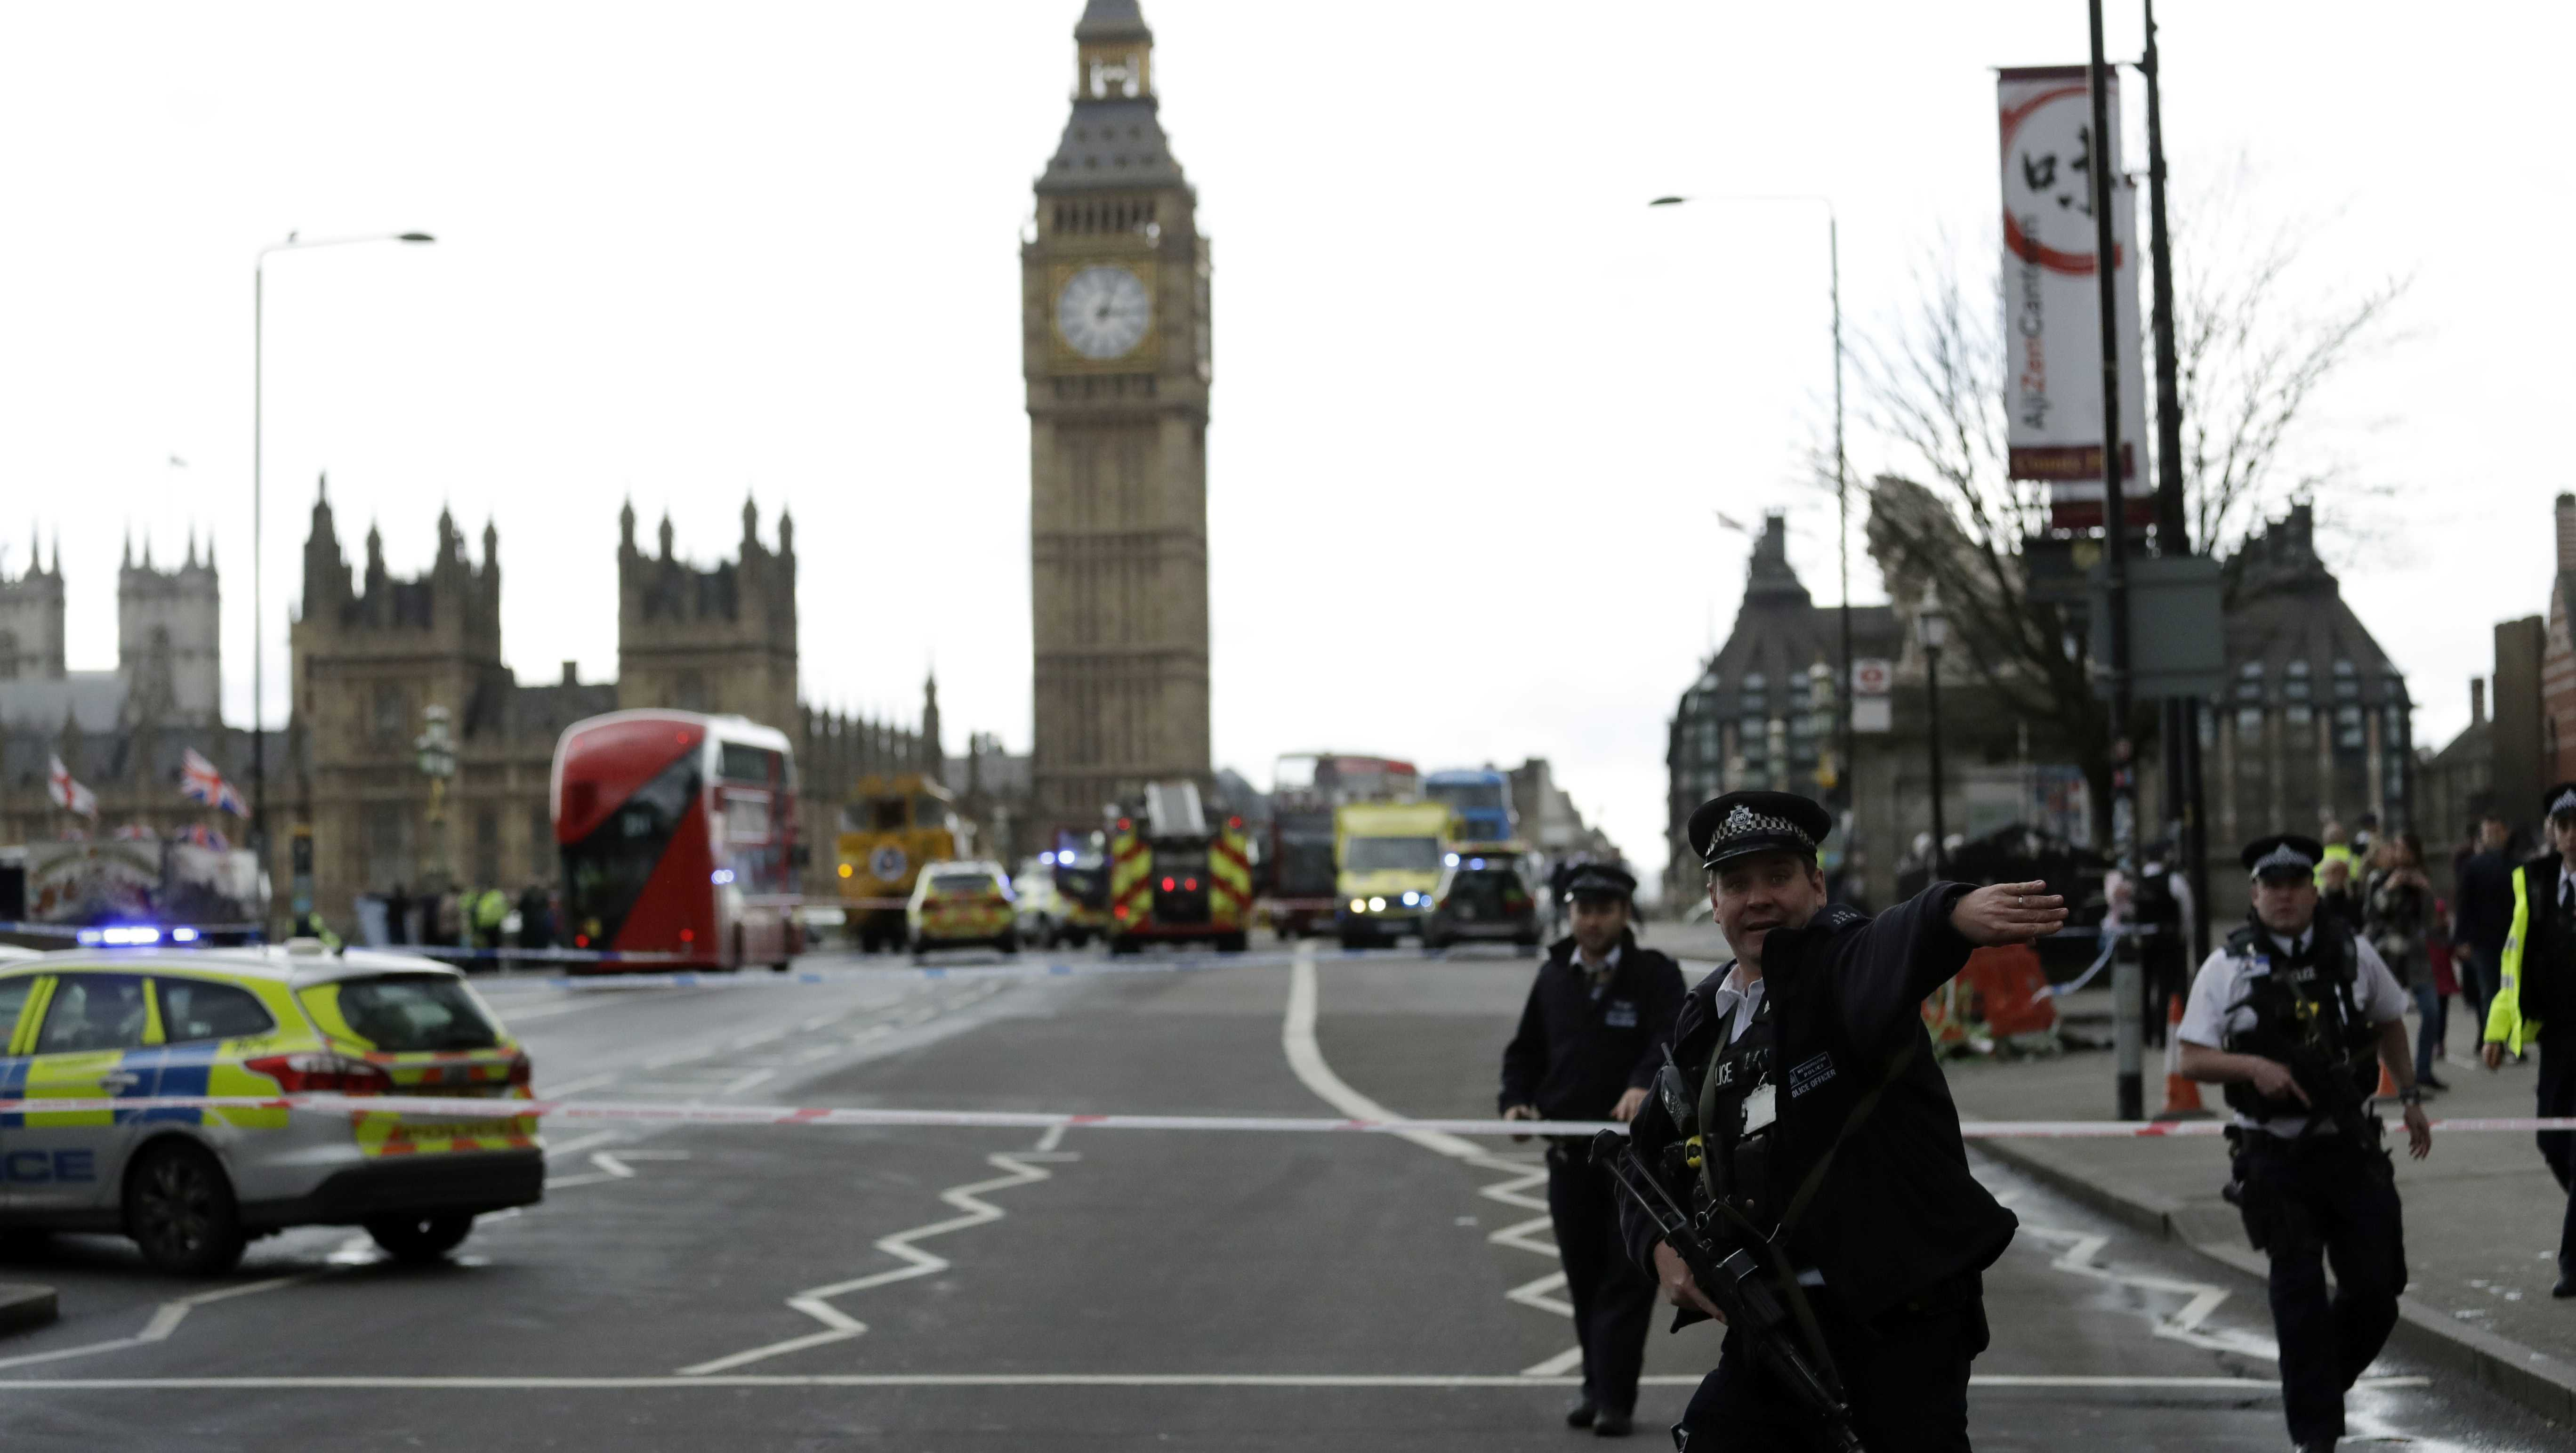 "Police secure the area on the south side of Westminster Bridge close to the Houses of Parliament in London, Wednesday, March 22, 2017. The leader of Britain's House of Commons says a man has been shot by police at Parliament. David Liddington also said there were ""reports of further violent incidents in the vicinity."" London's police said officers had been called to a firearms incident on Westminster Bridge, near the parliament. Britain's MI5 says it is too early to say if the incident is terror-related."